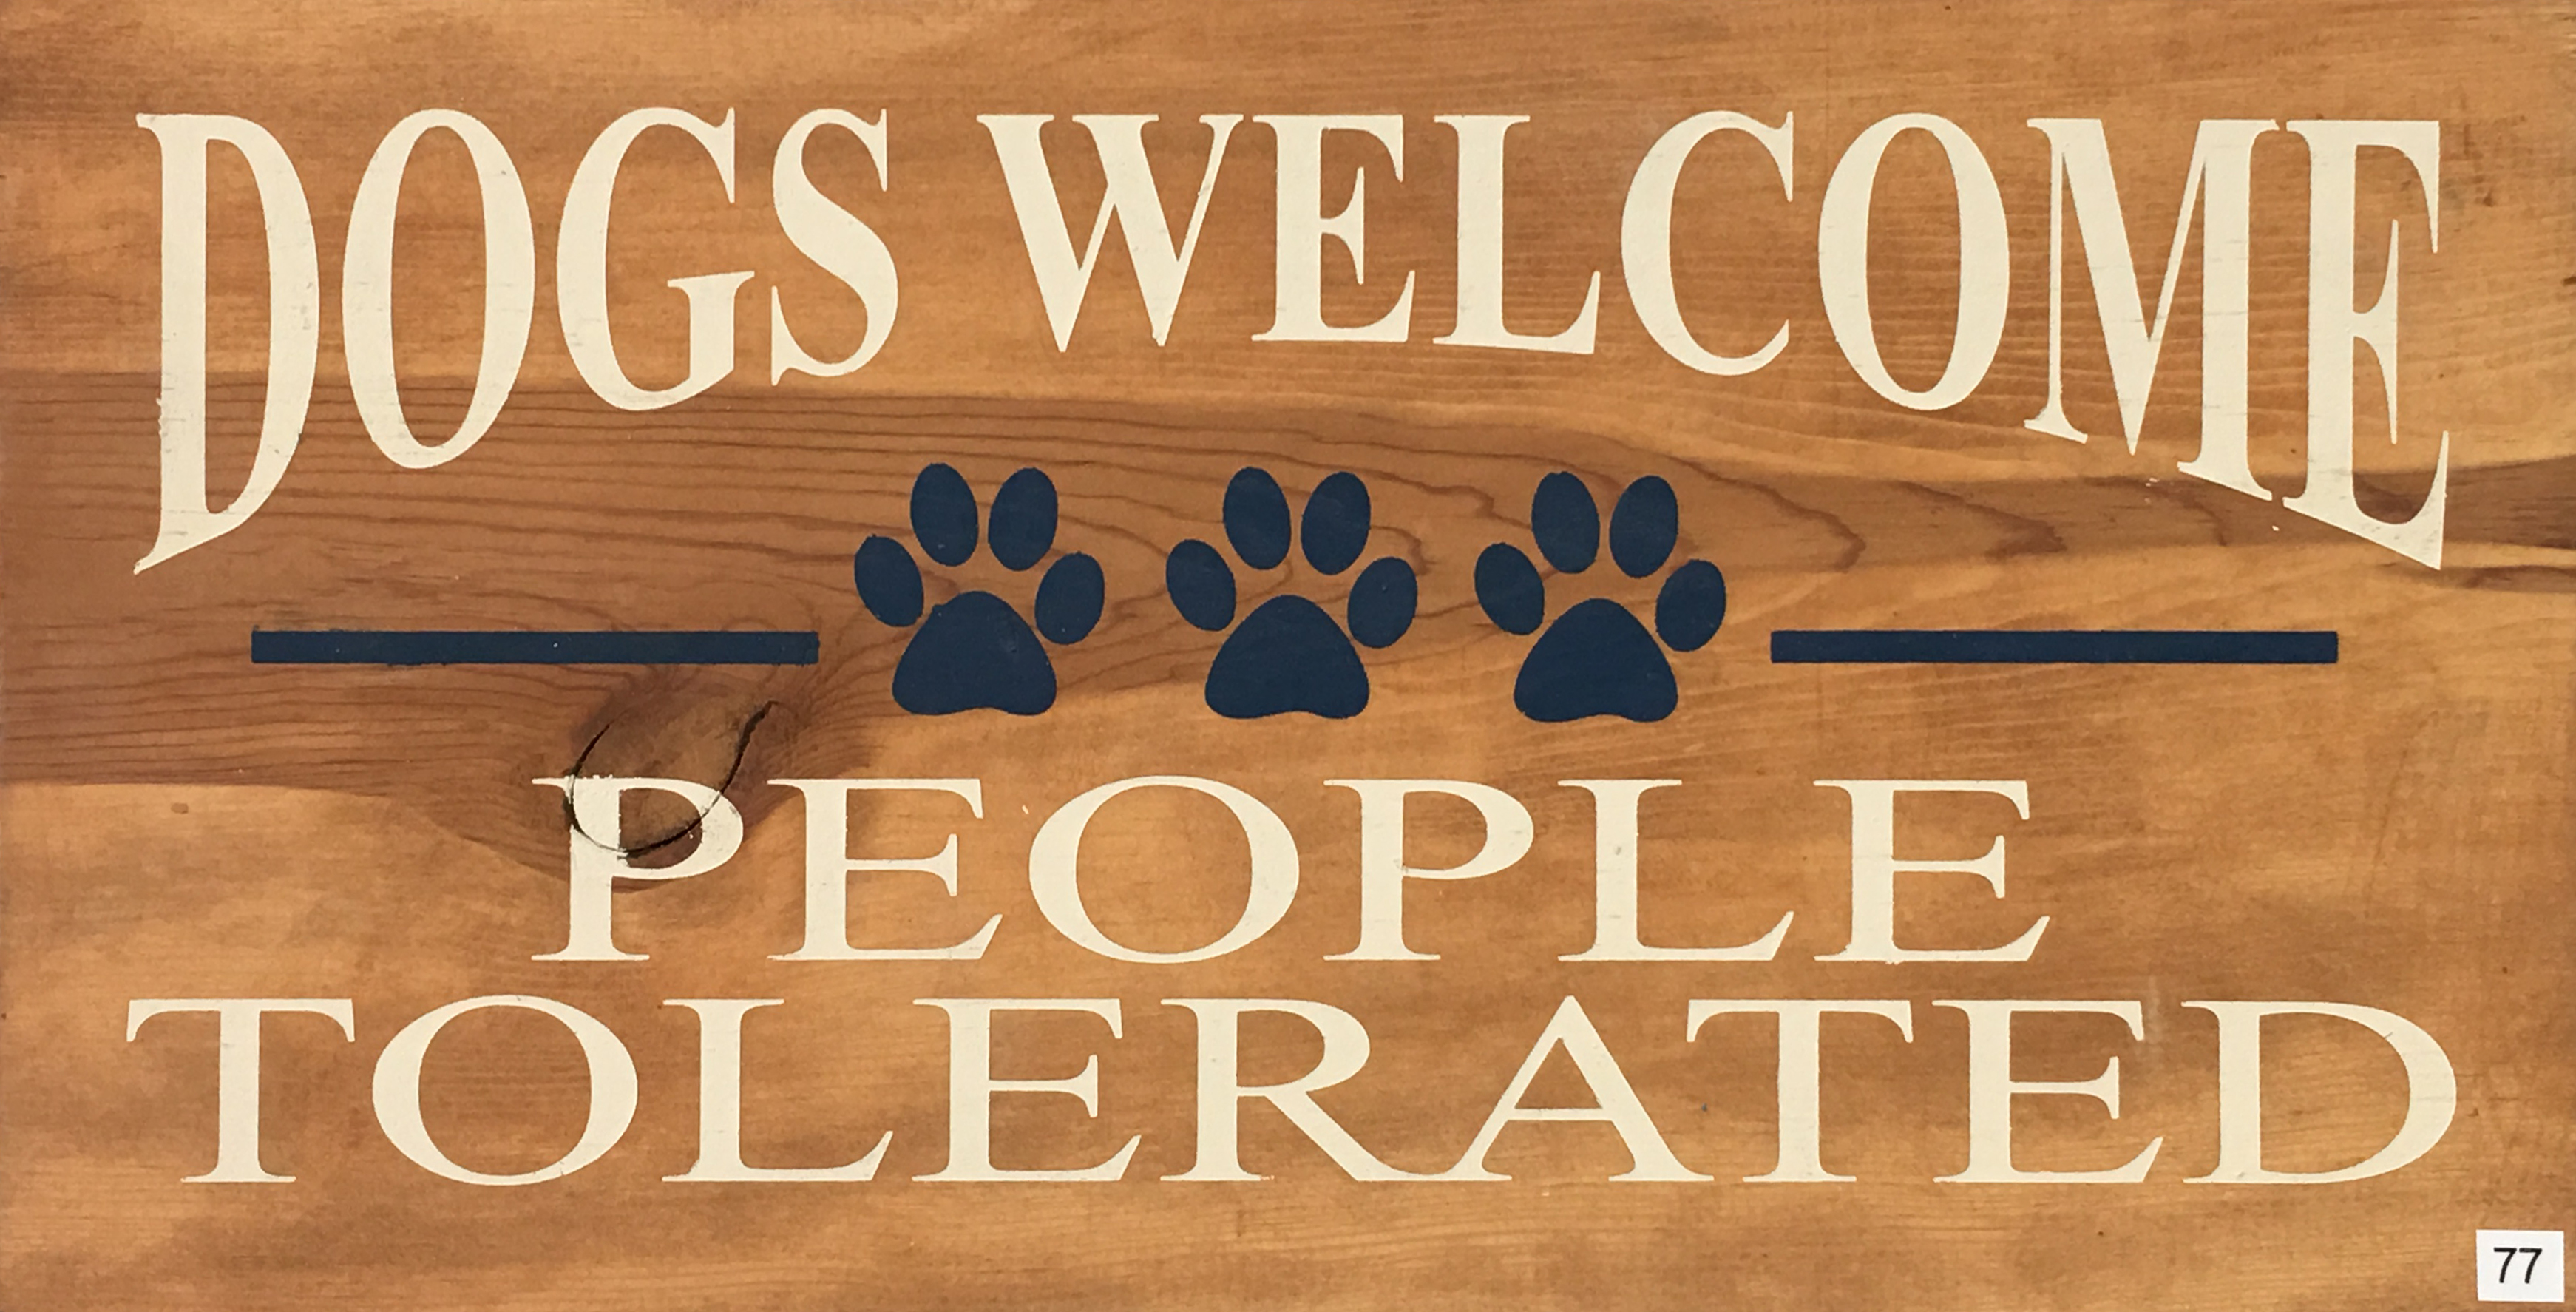 #77 Dogs Welcome